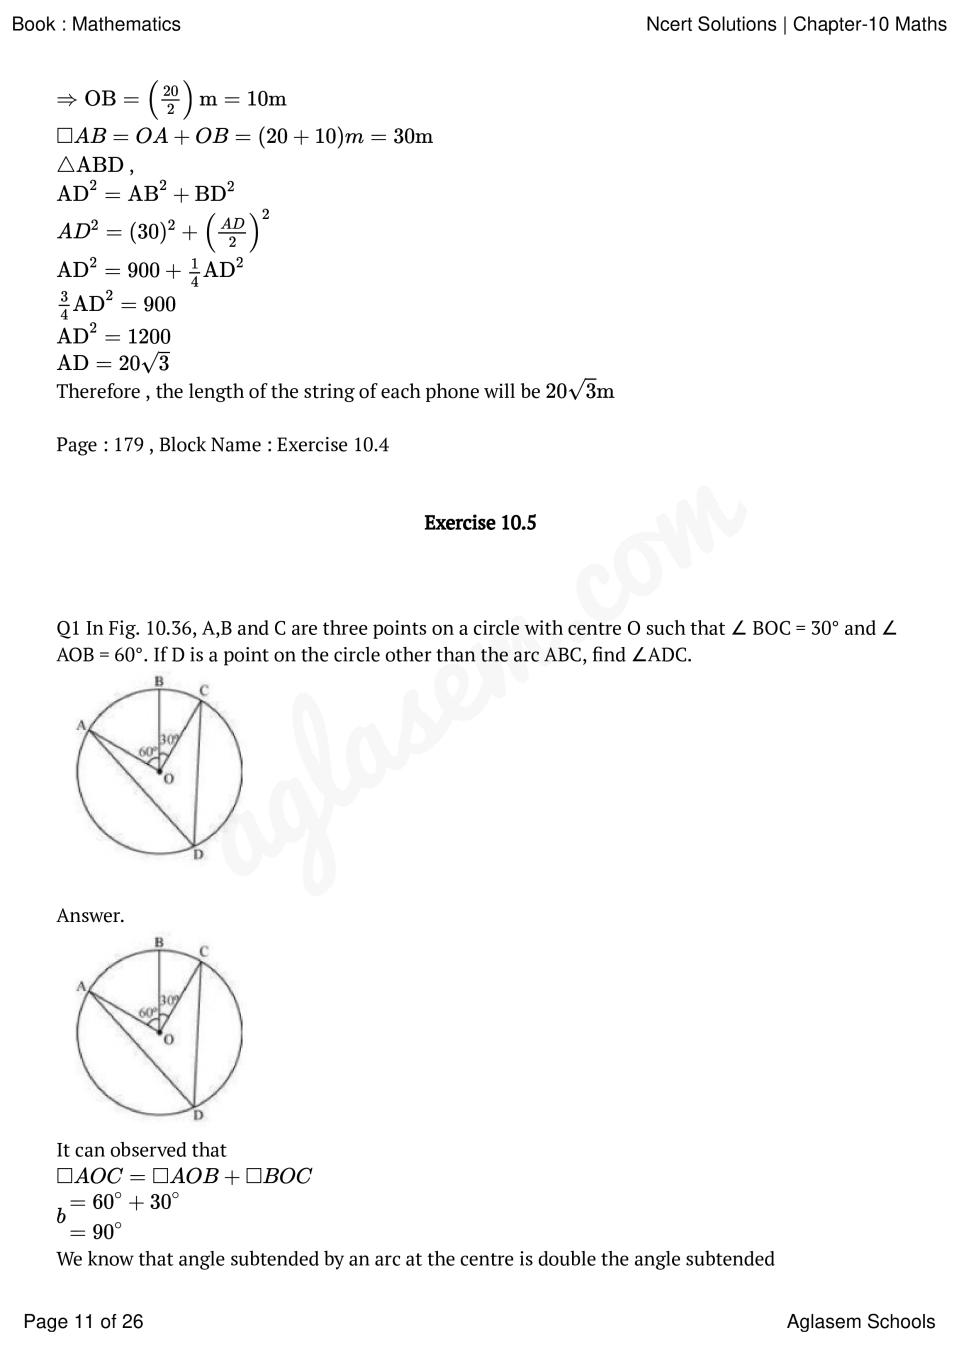 NCERT Solutions for Class 10 Maths Chapter 10 Circles